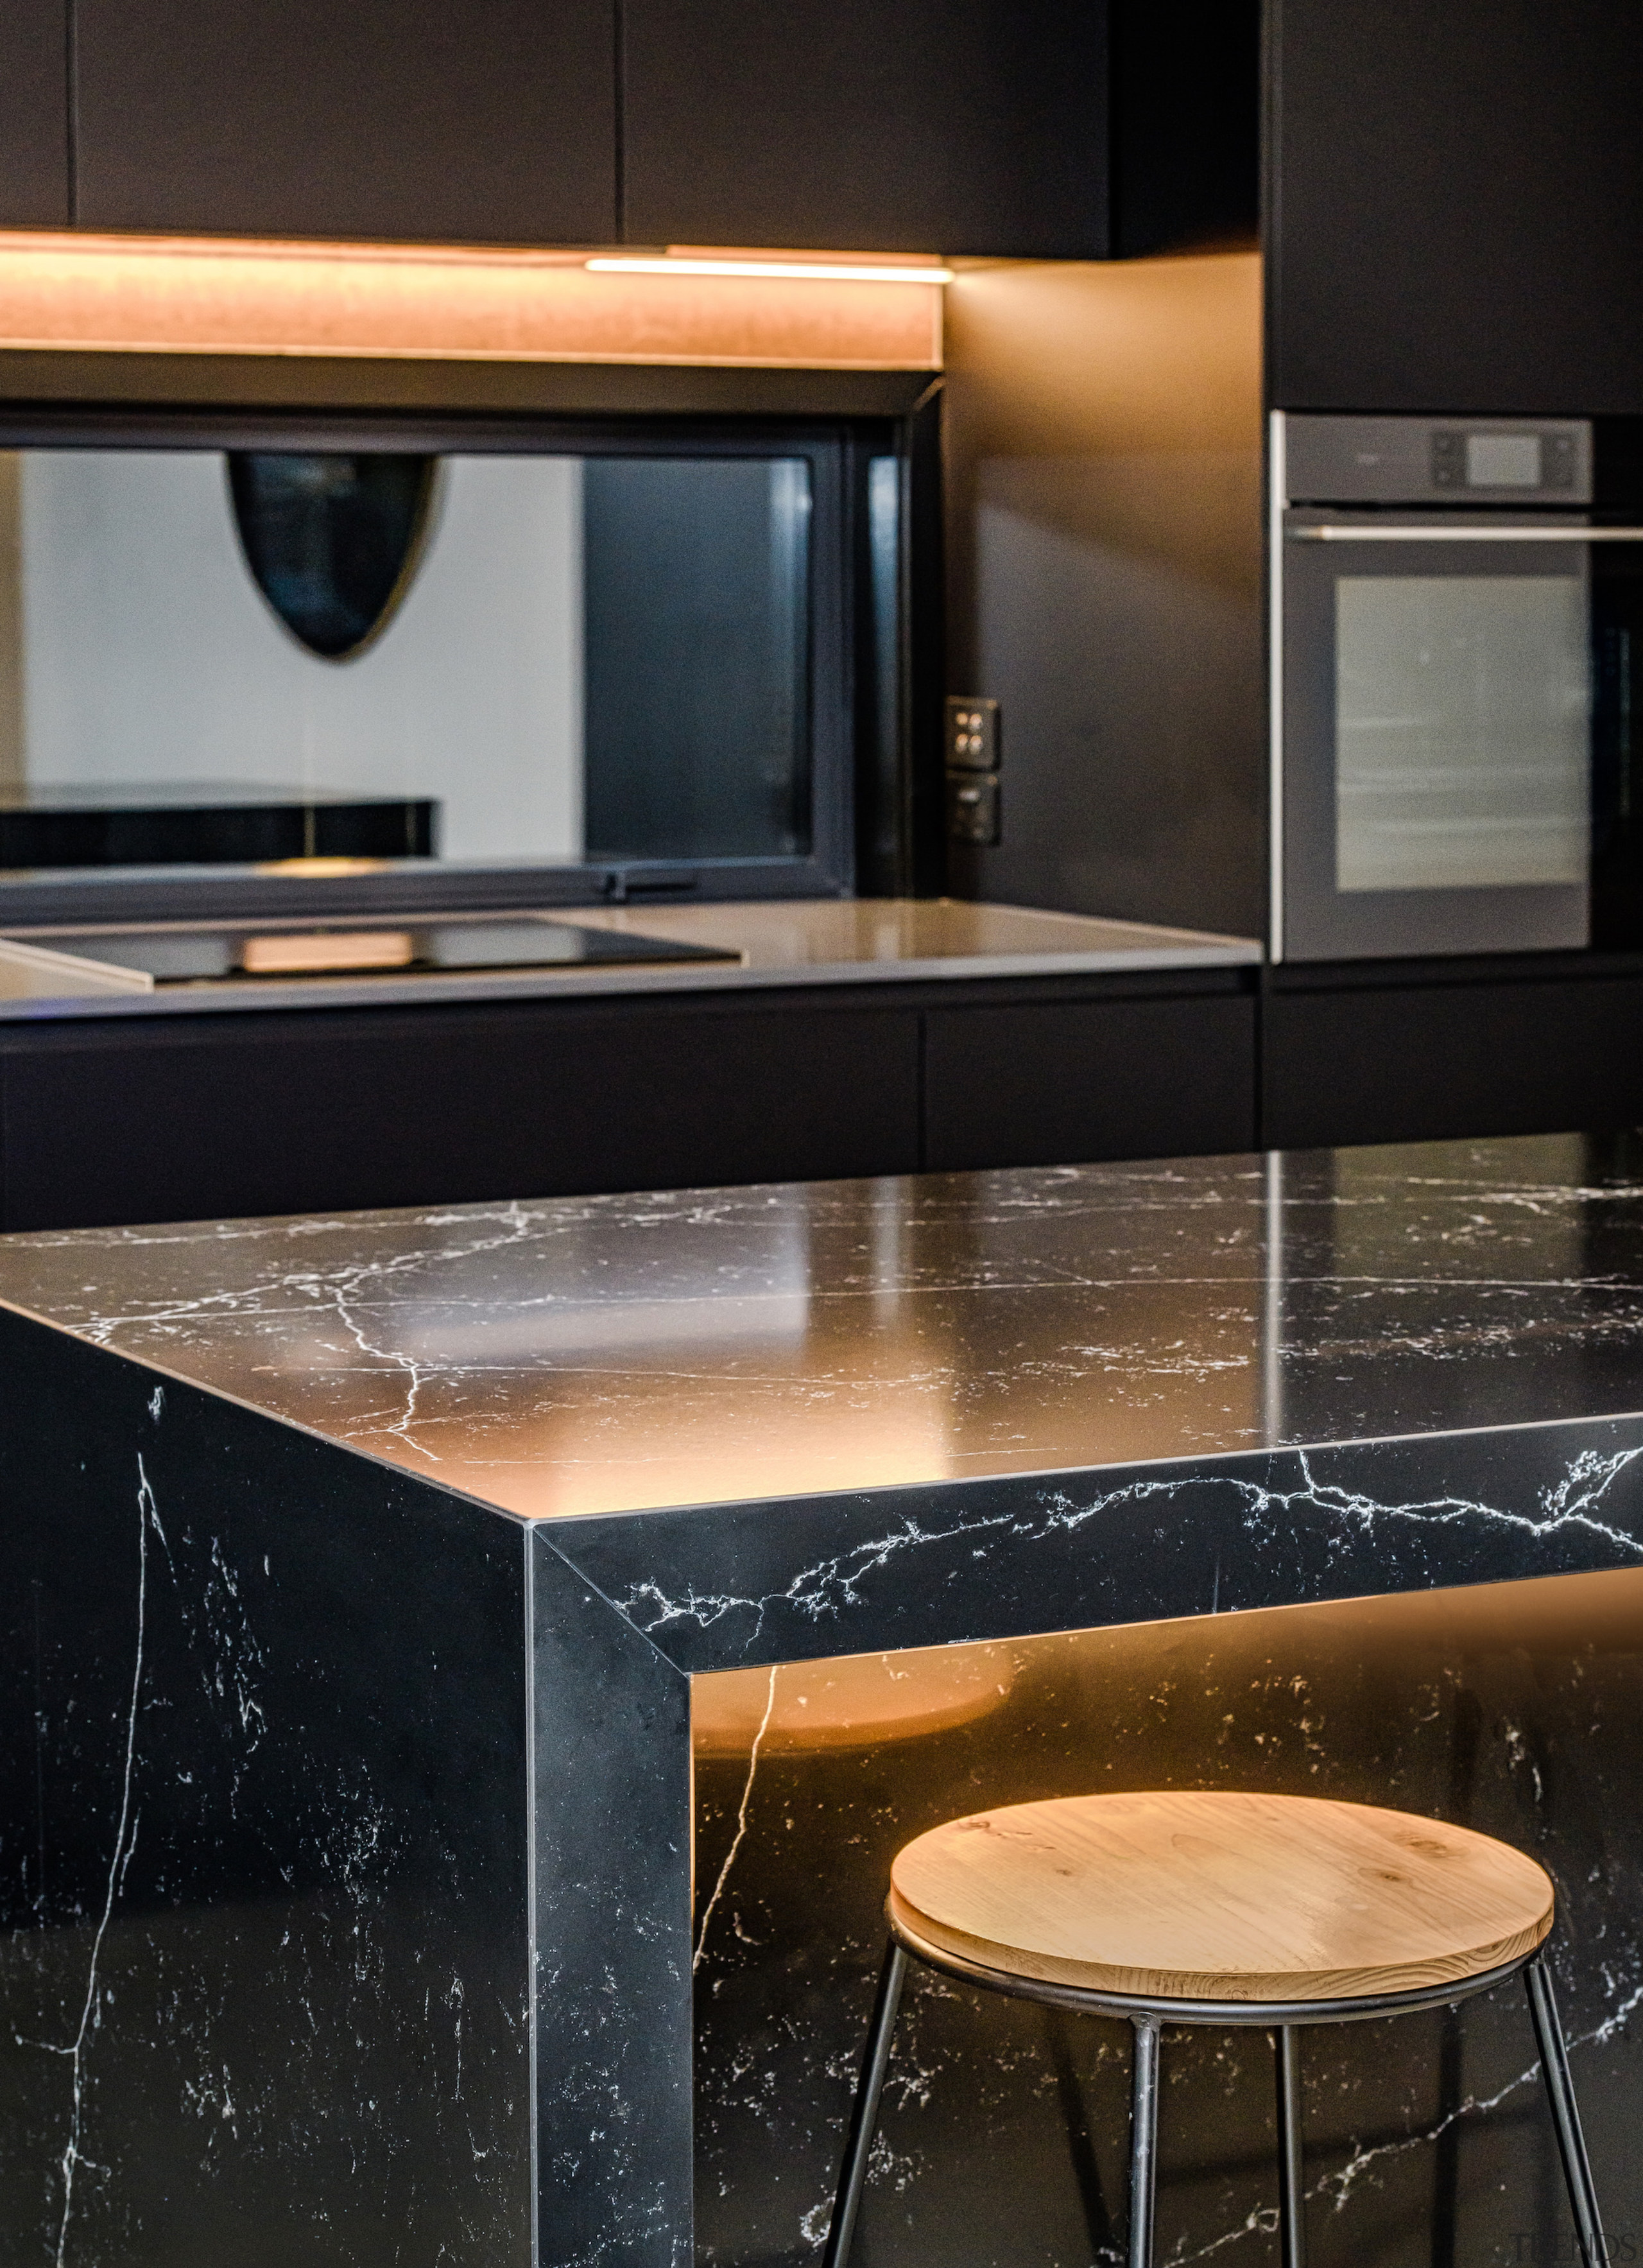 The black stone island is under-lit for dramatic architecture, building, cabinetry, countertop, design, desk, floor, flooring, furniture, glass, granite, home, house, interior design, kitchen, marble, material property, property, room, table, tile, black